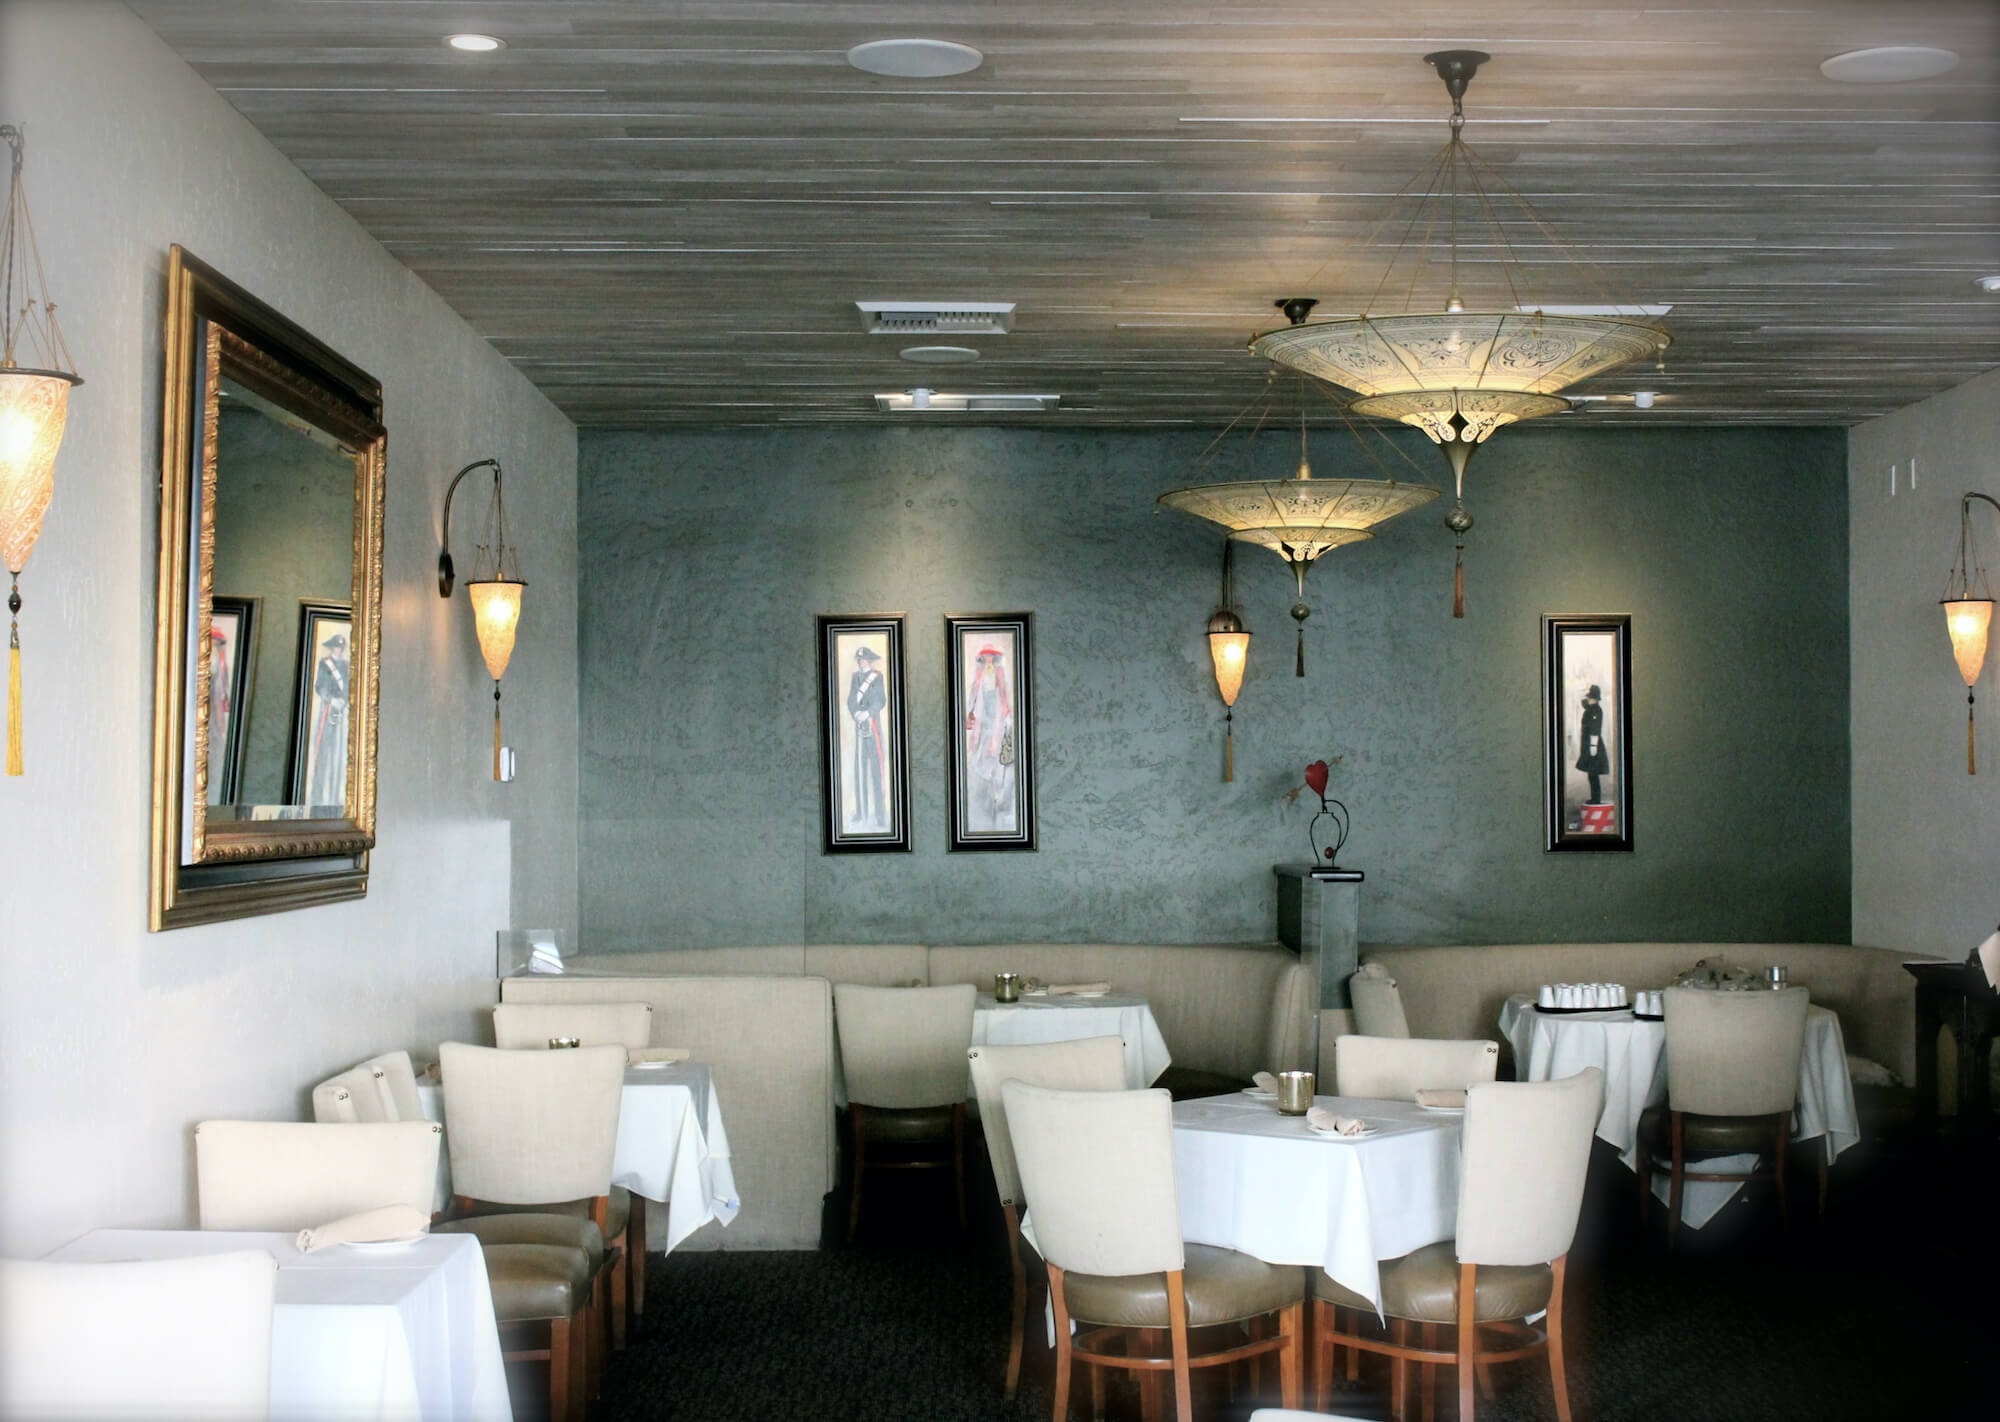 Dining room with sconces and chandeliers in prominent view.